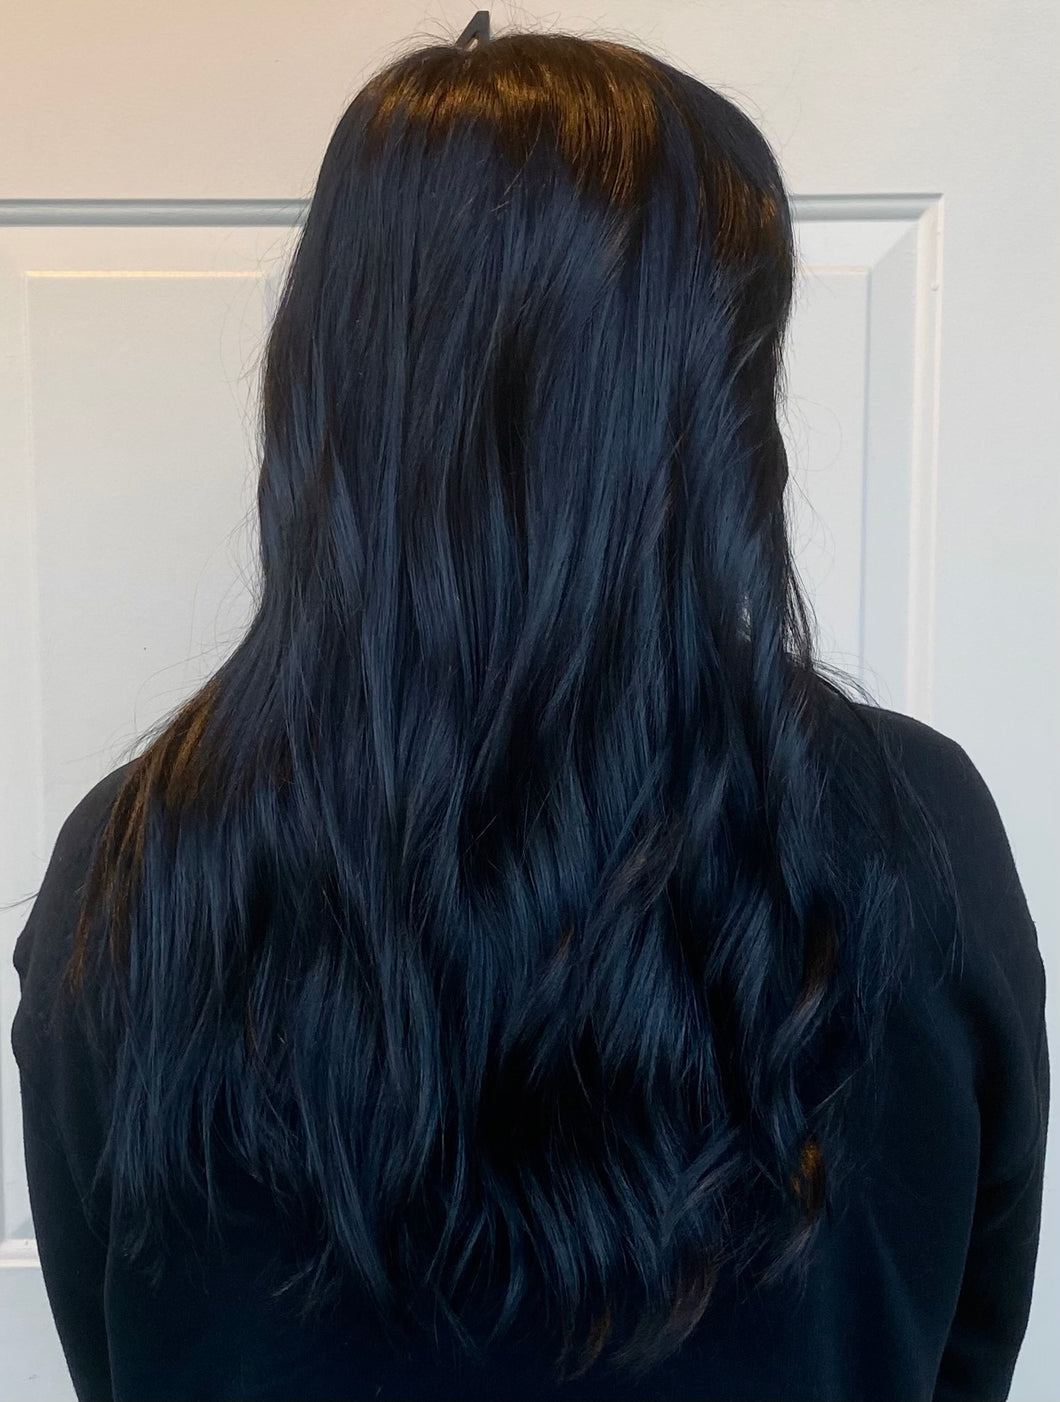 Color from Roots to Ends in Black (Ready to Order)